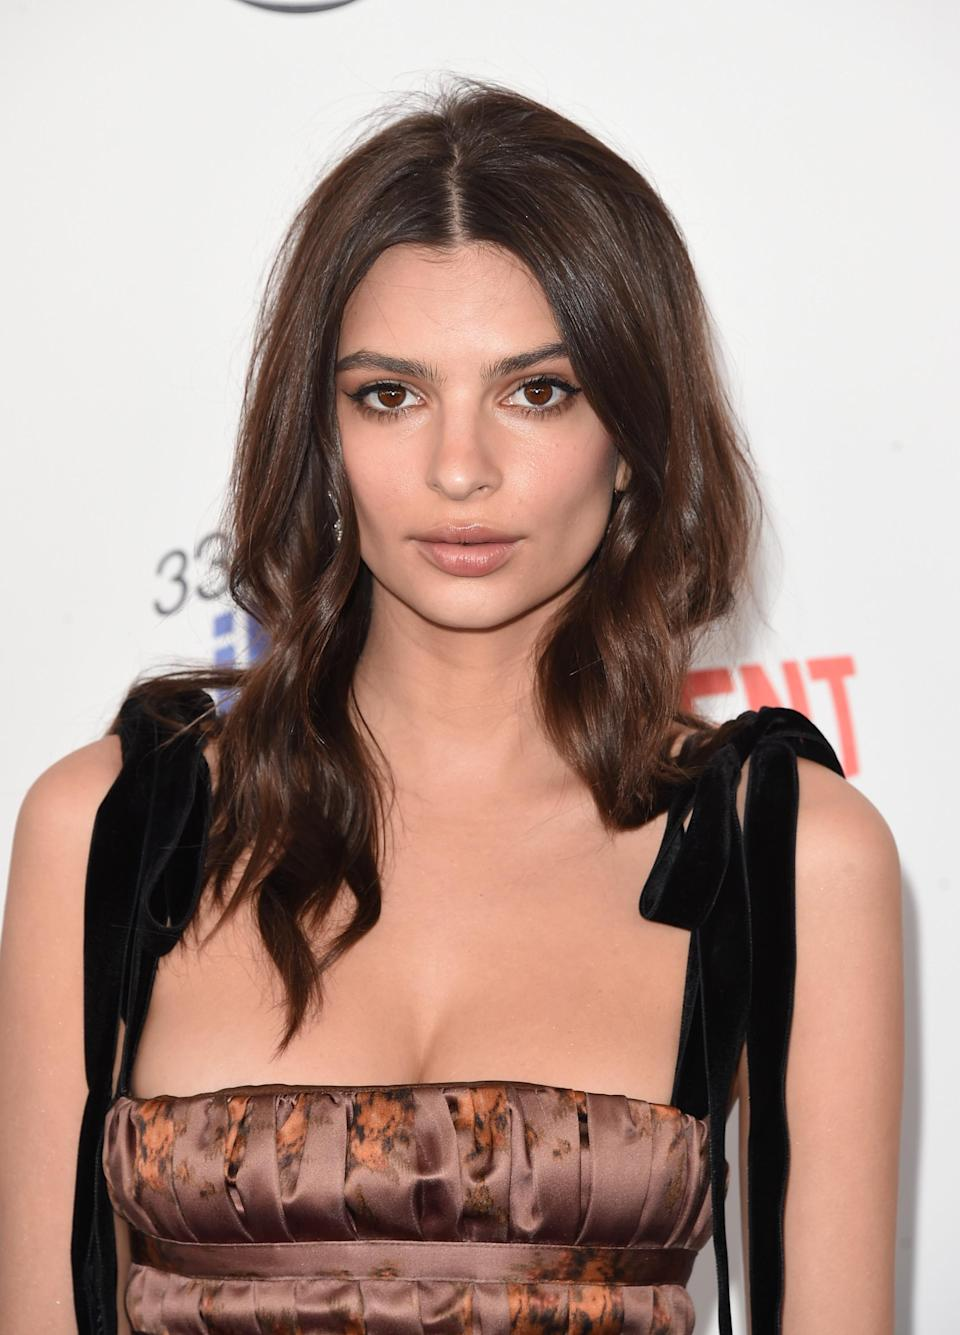 Emily Ratajkowski is being trolled about her body. (Photo: Jason Merritt/Getty Images)